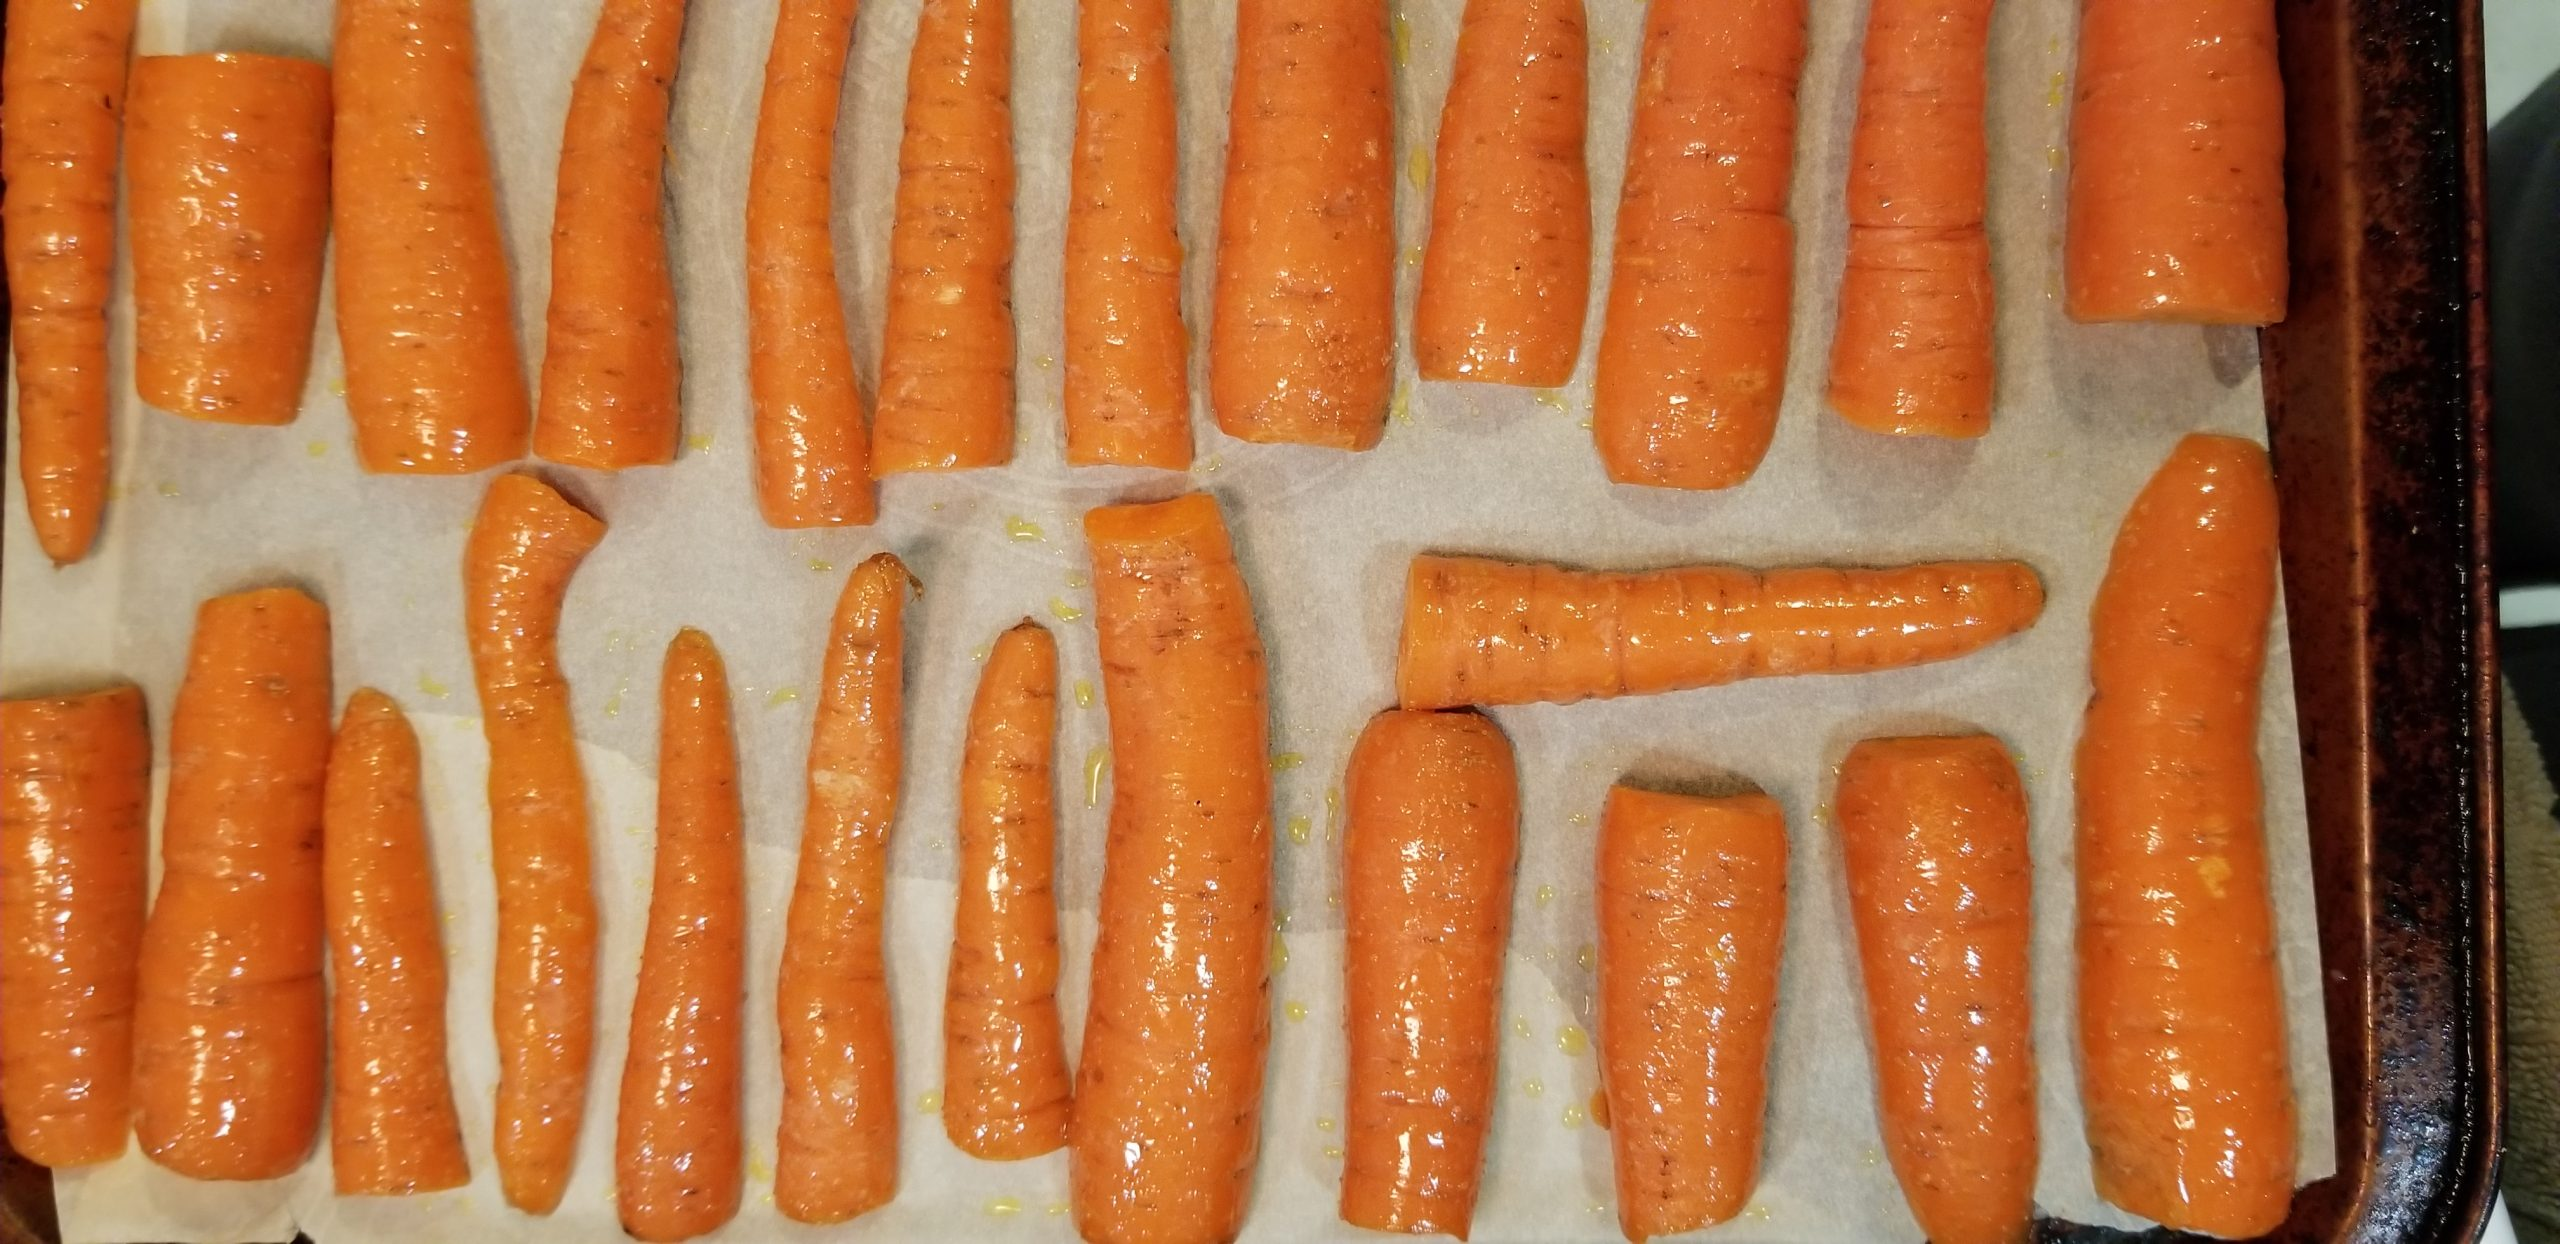 Chopped carrots on a baking tray lined with parchment papper